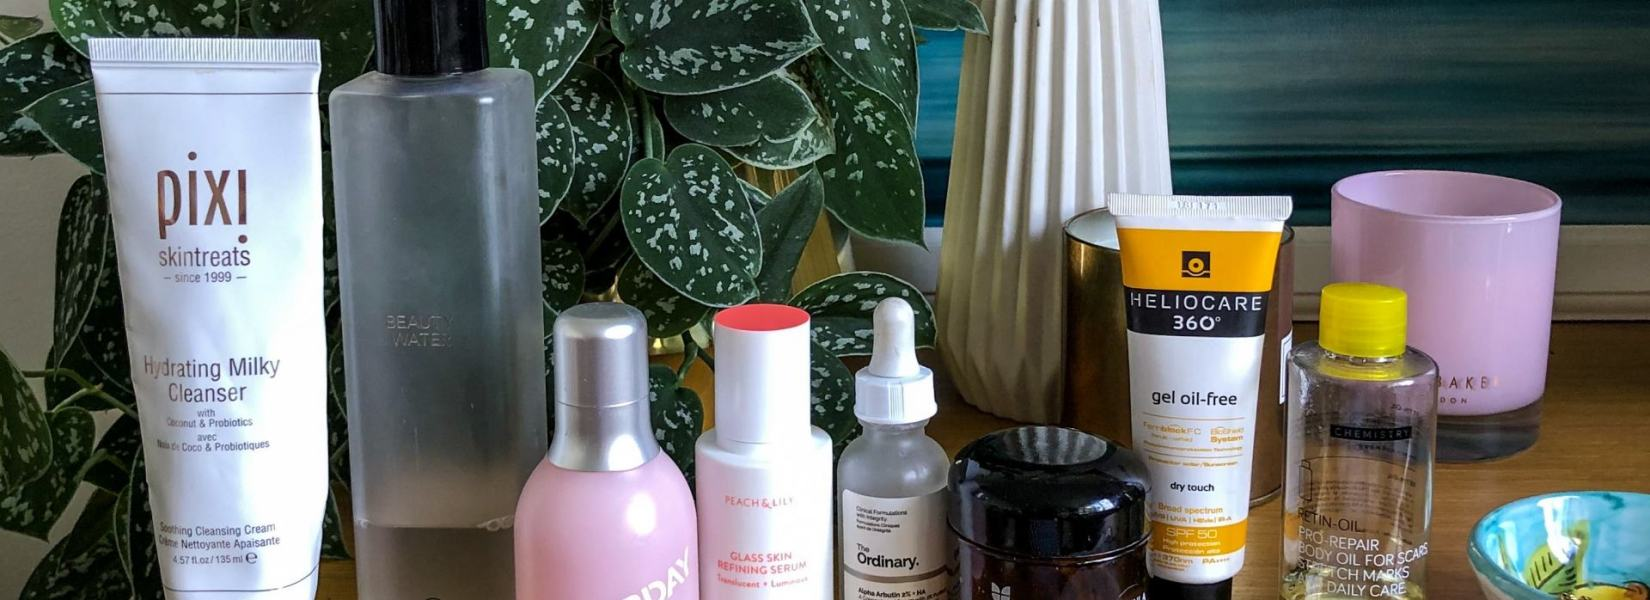 My Morning Skincare Routine For Oily Skin [ad]